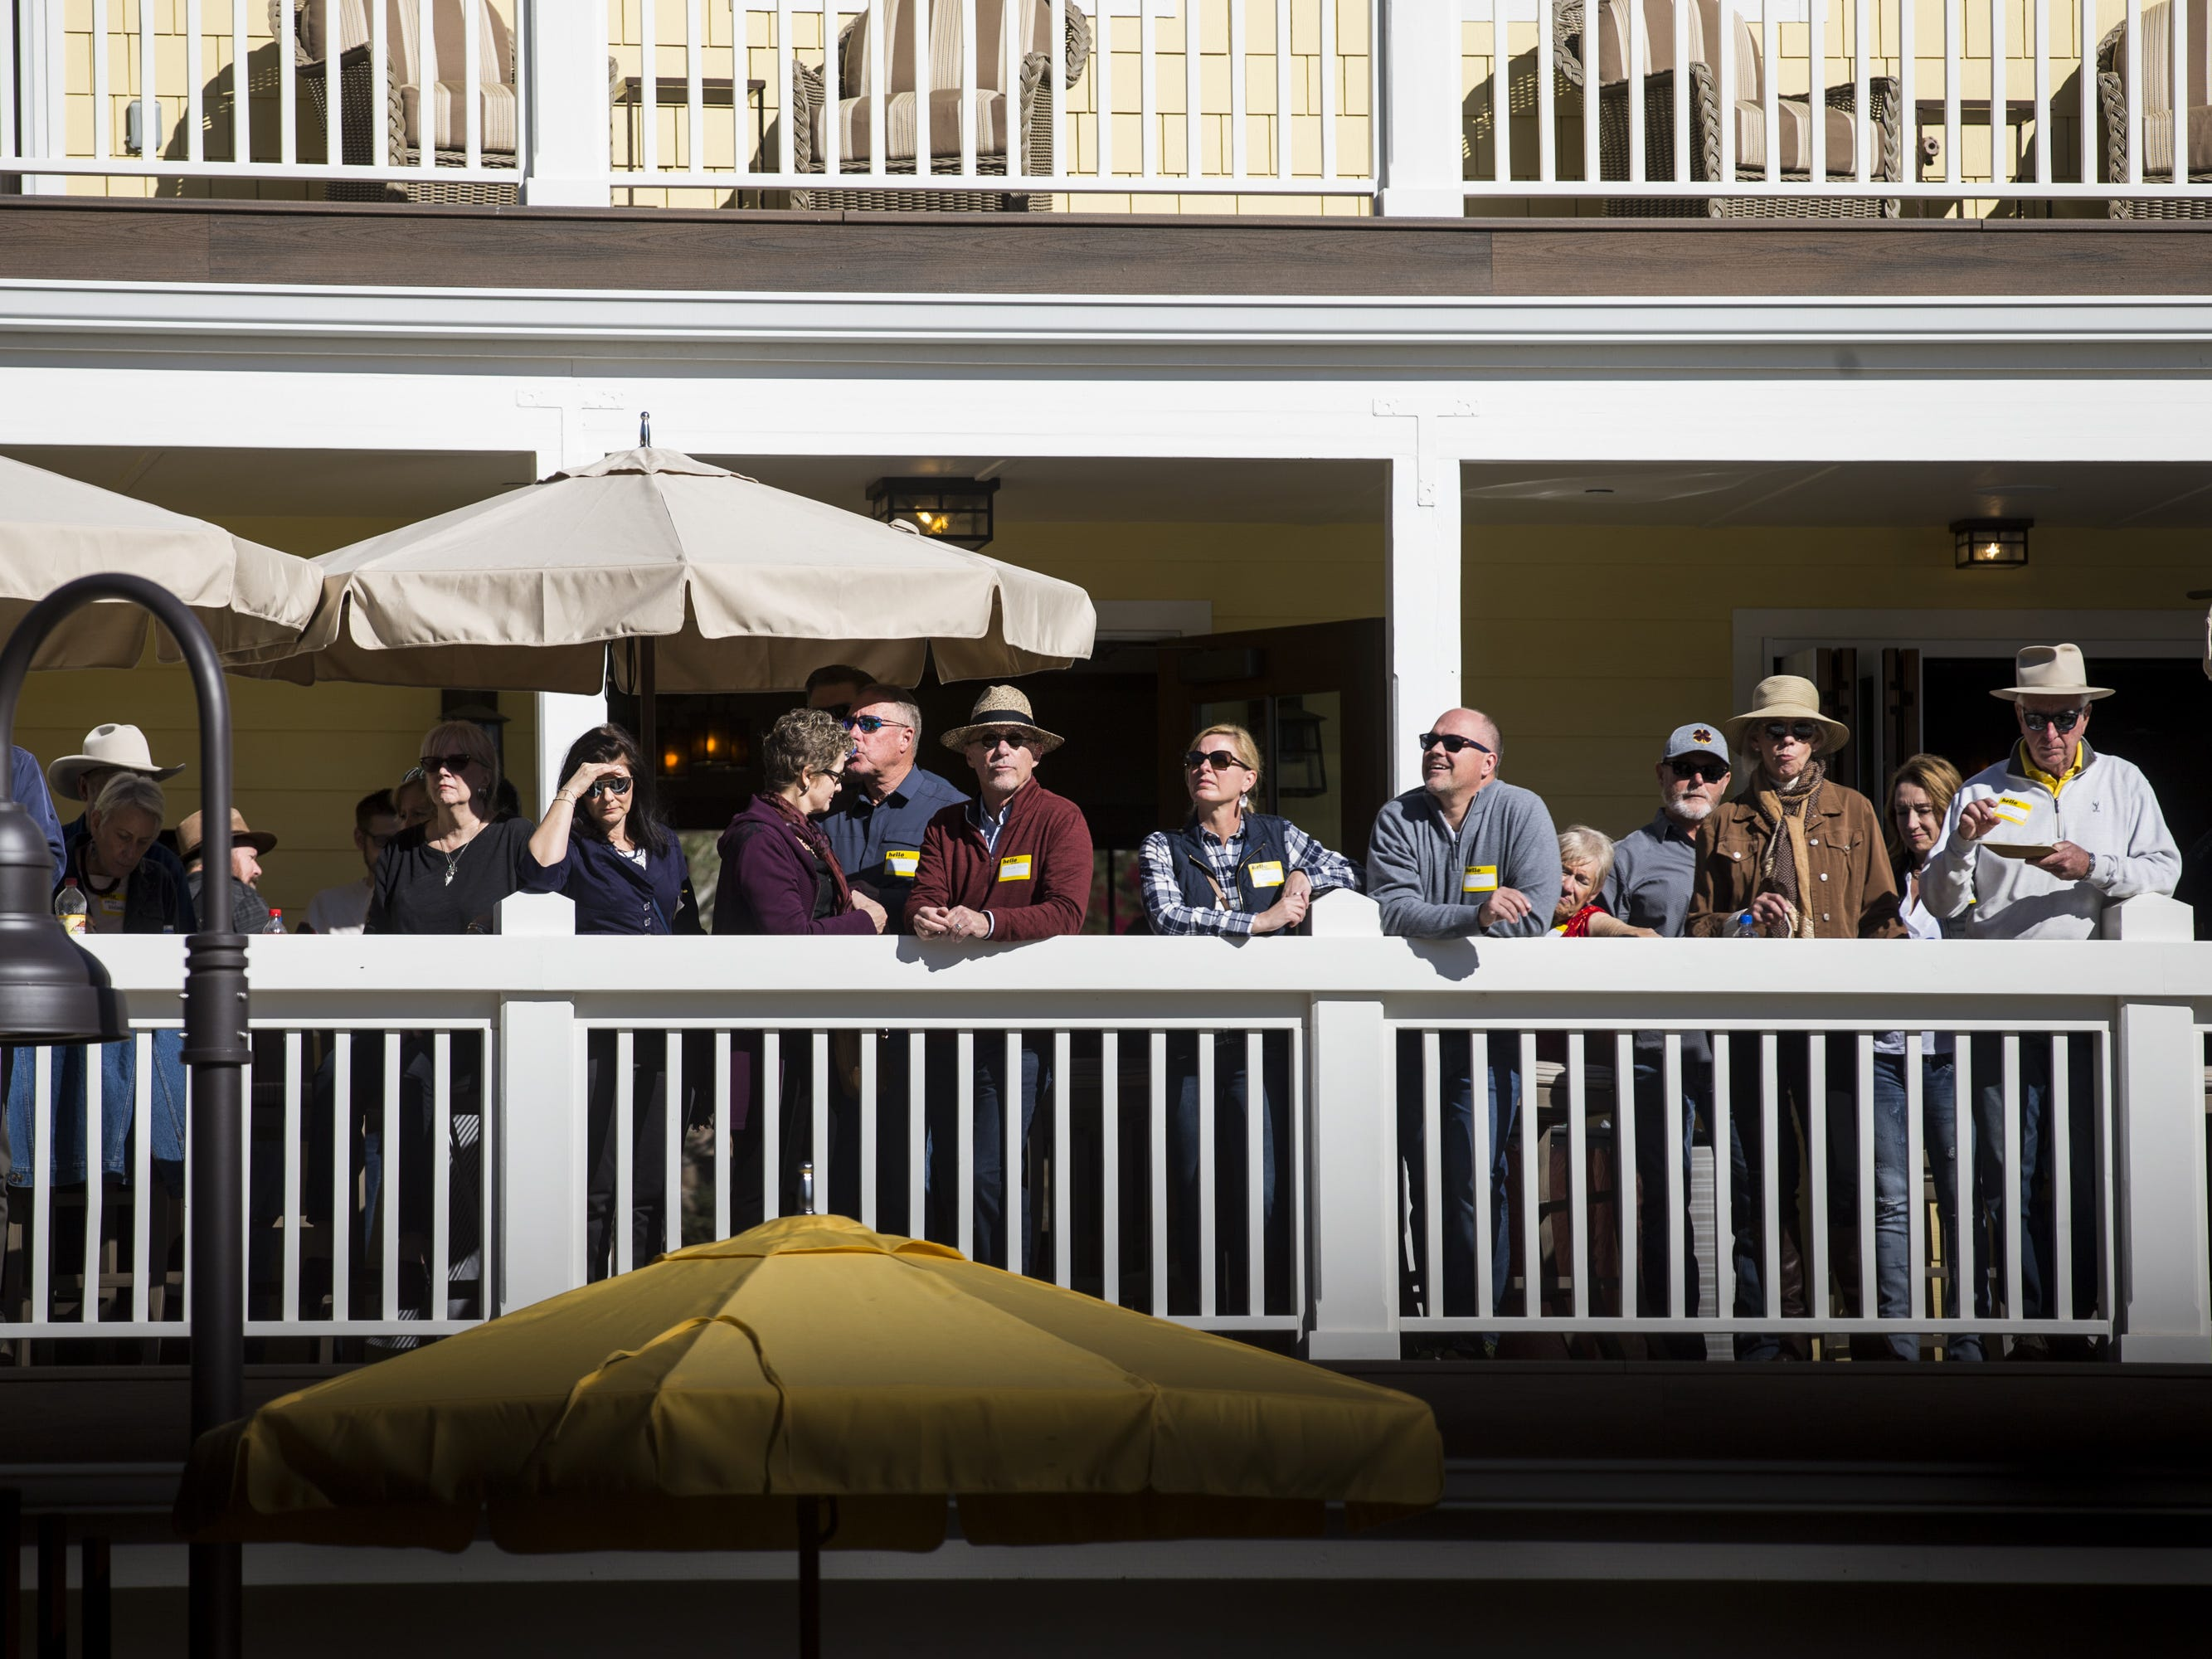 People watch the flag-raising ceremony during a private preview of the newly renovated Castle Hot Springs resort on Saturday, Dec. 8, 2018, in Morristown, Ariz. It has been 50 years since the resort has hosted any guests.